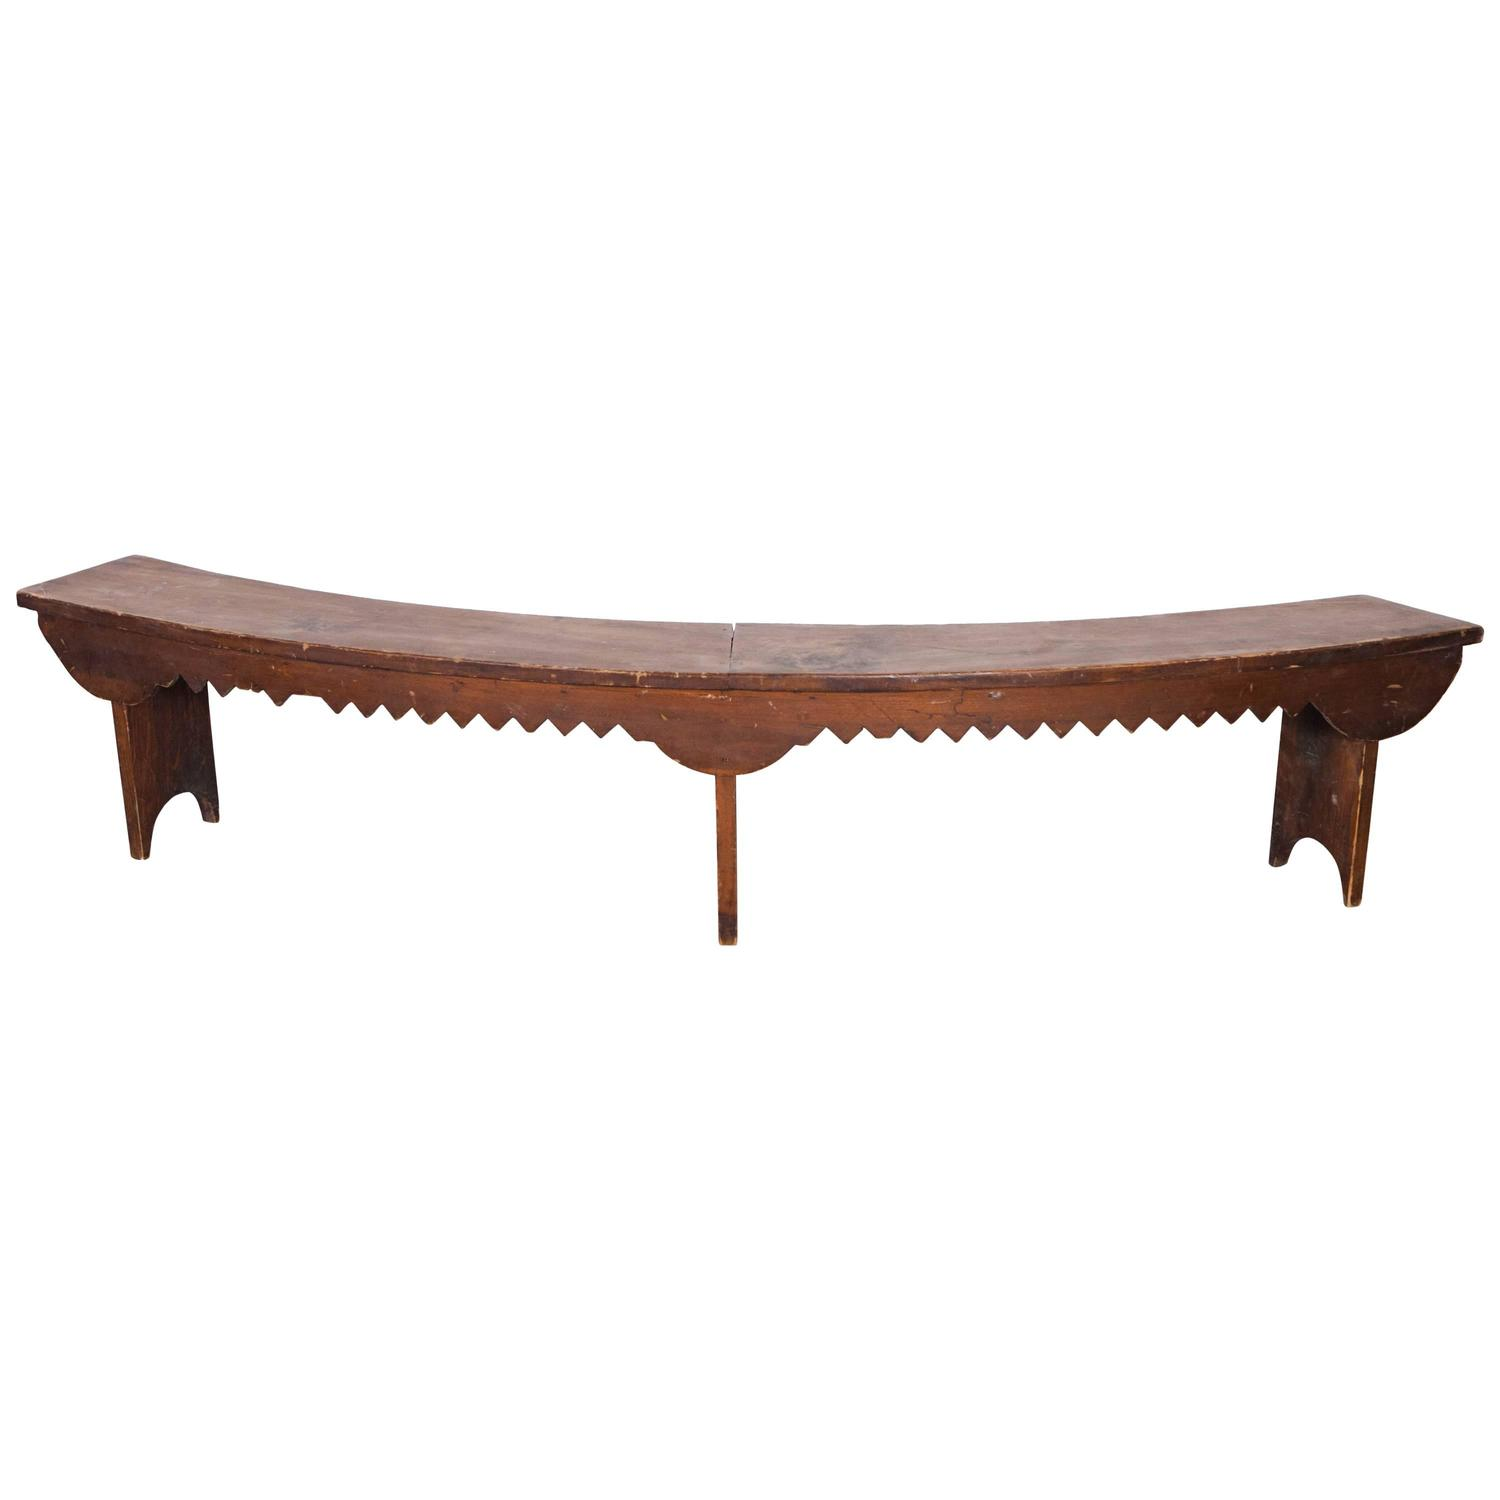 Curved Wooden Bench With Carved Decorative Apron At 1stdibs